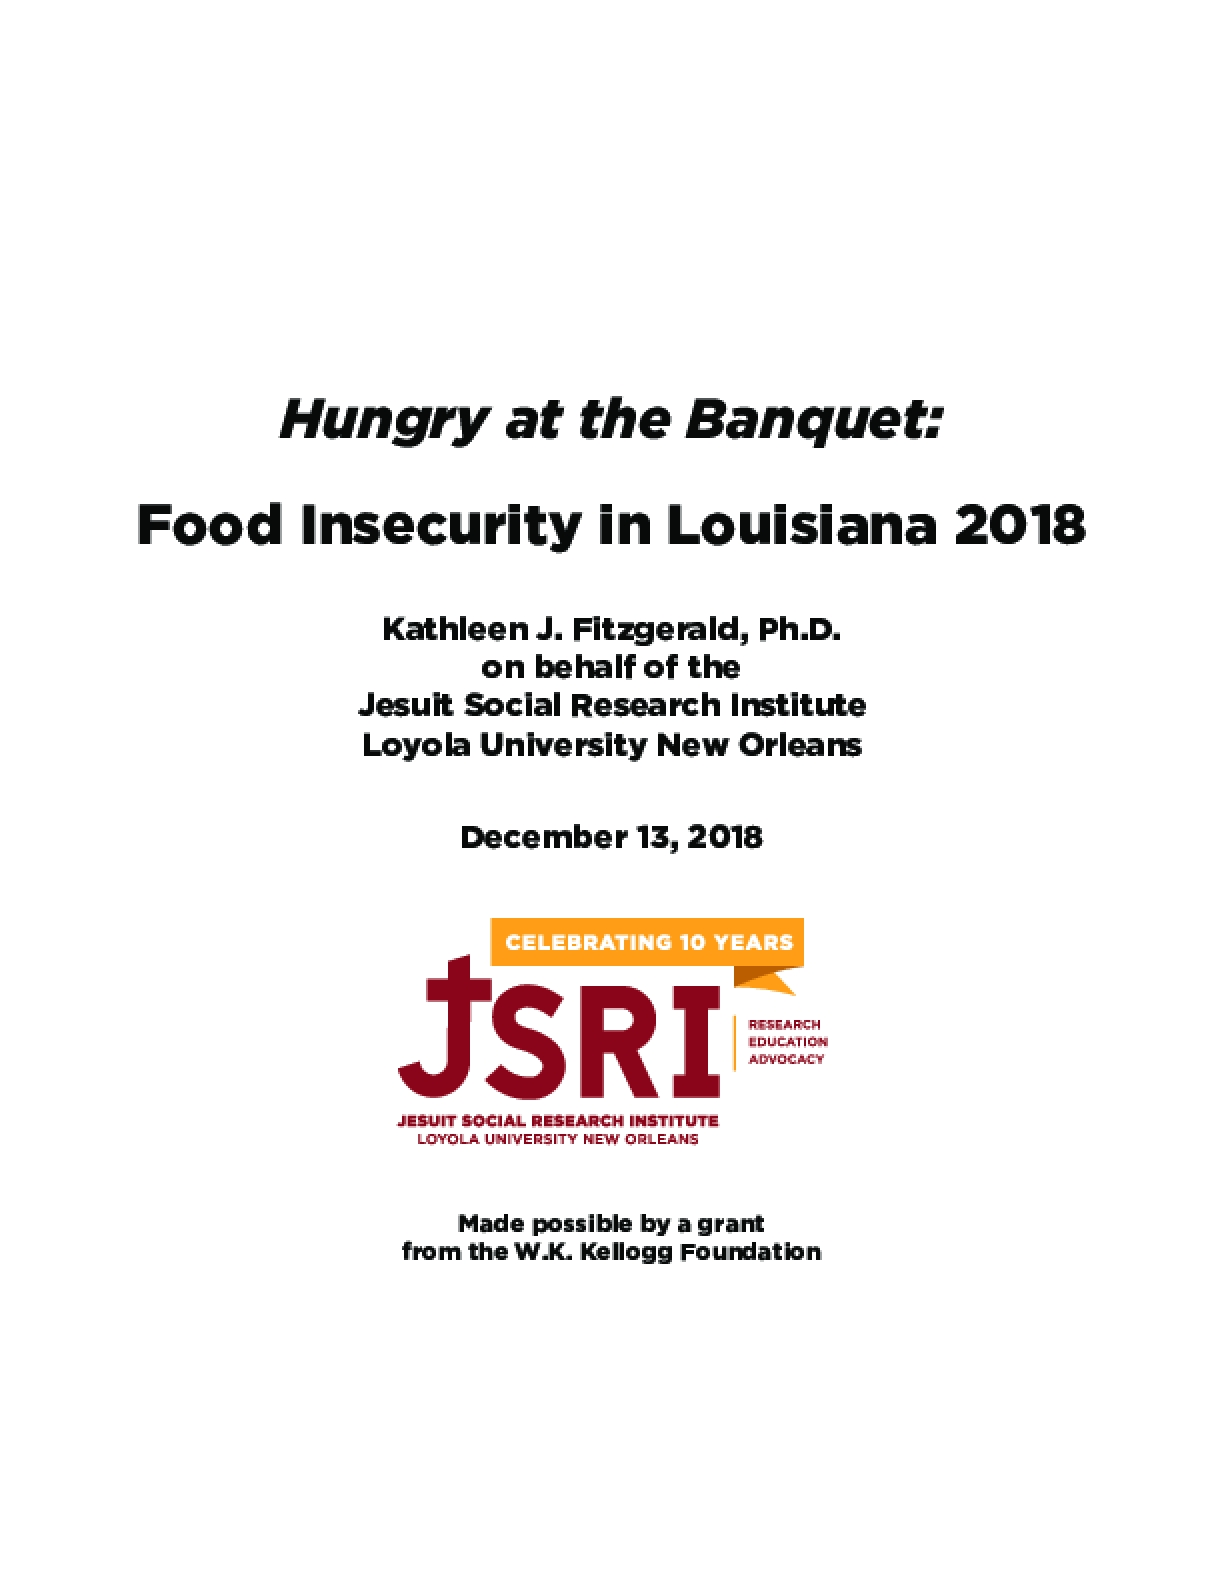 Hungry at the Banquet: Food Insecurity in Louisiana 2018